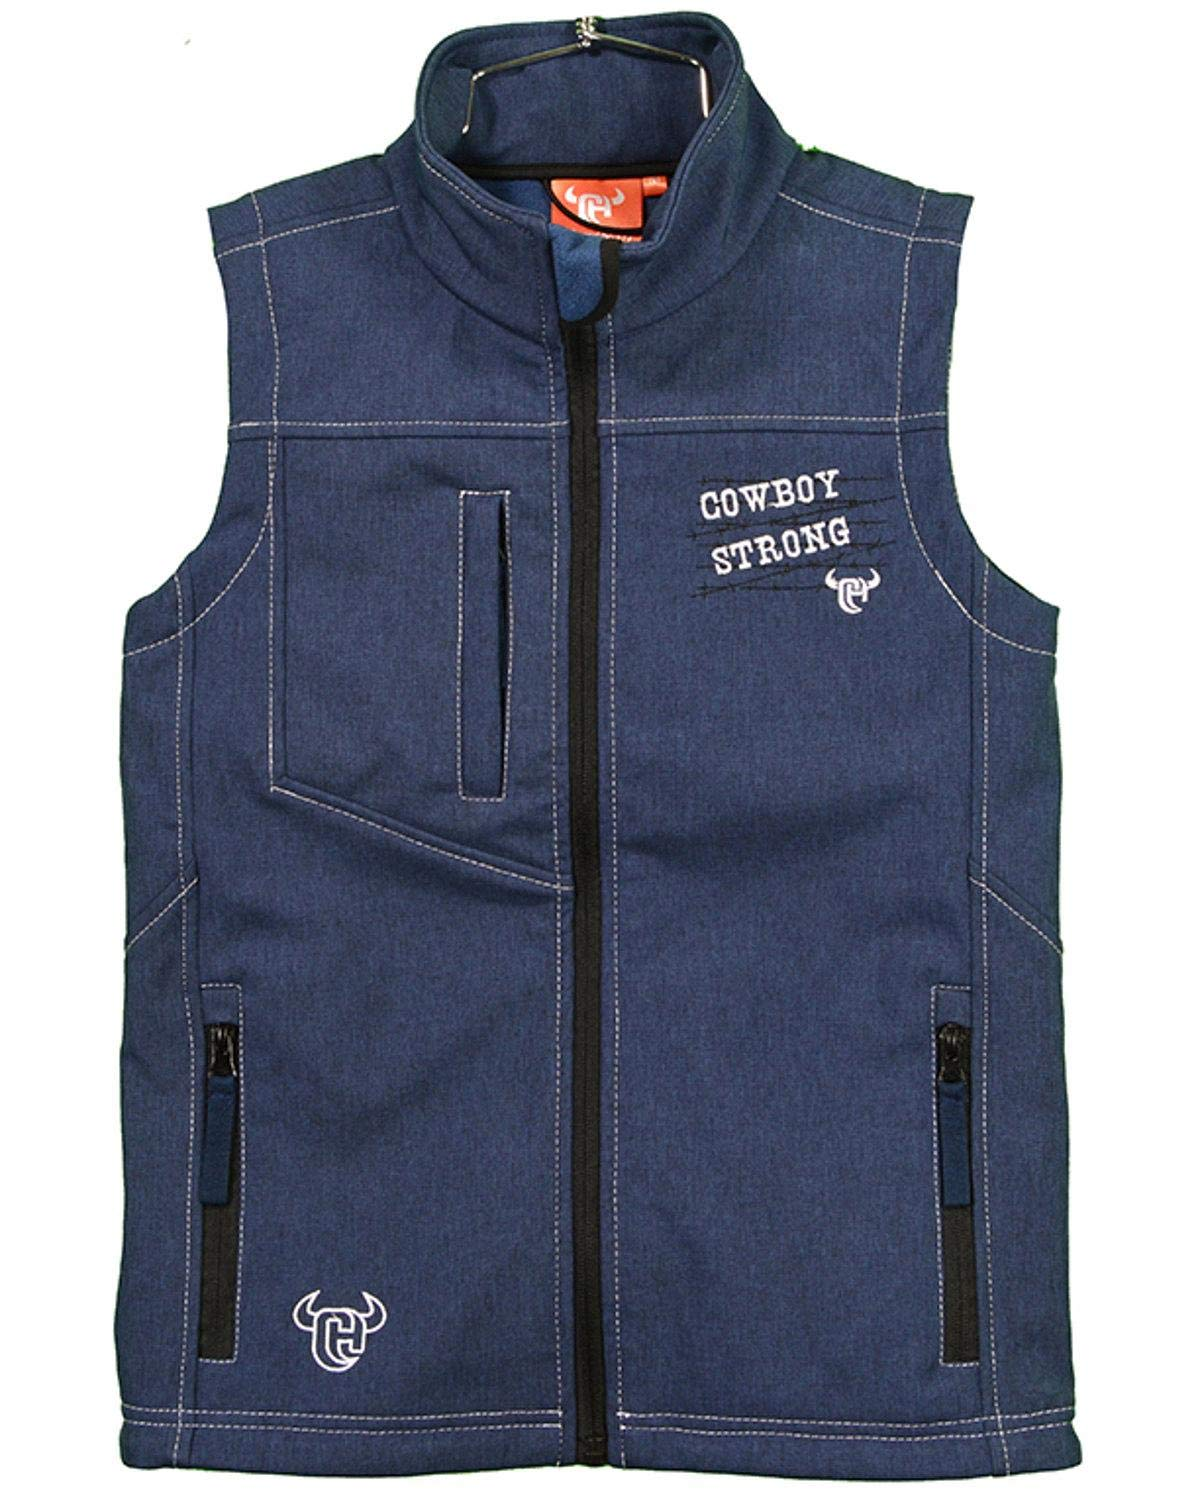 Cowboy Hardware Boys Strong Poly Shell Vest Navy X-Small by Cowboy Hardware